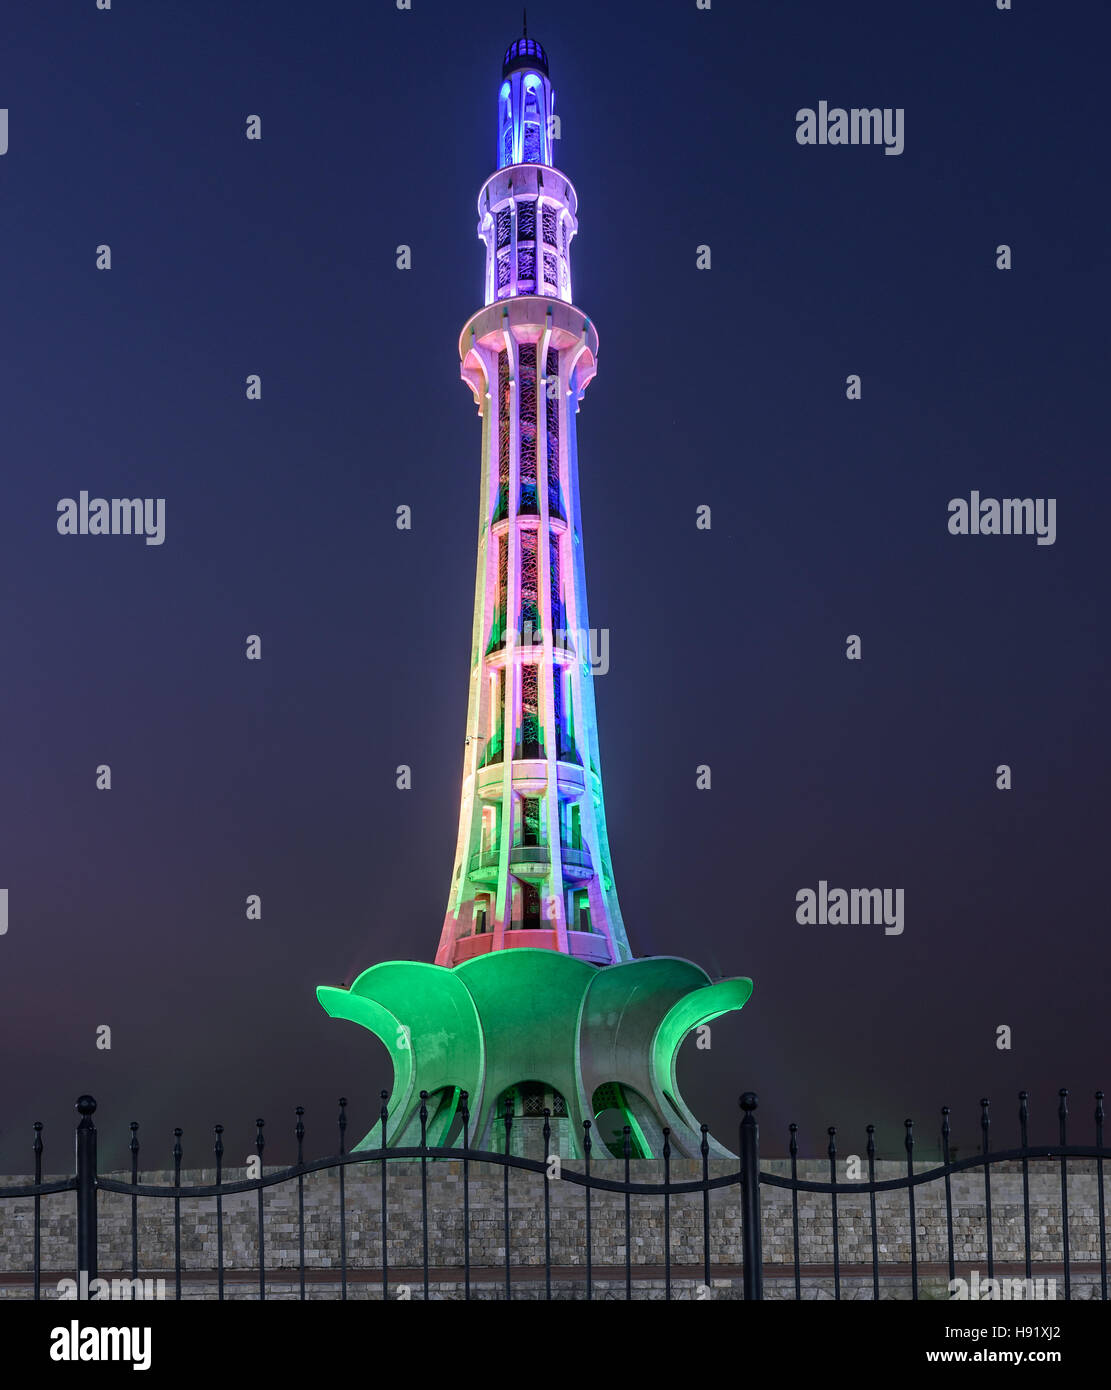 Minar-e-Pakistan is a public monument located in Iqbal Park Lahore, Pakistan. - Stock Image